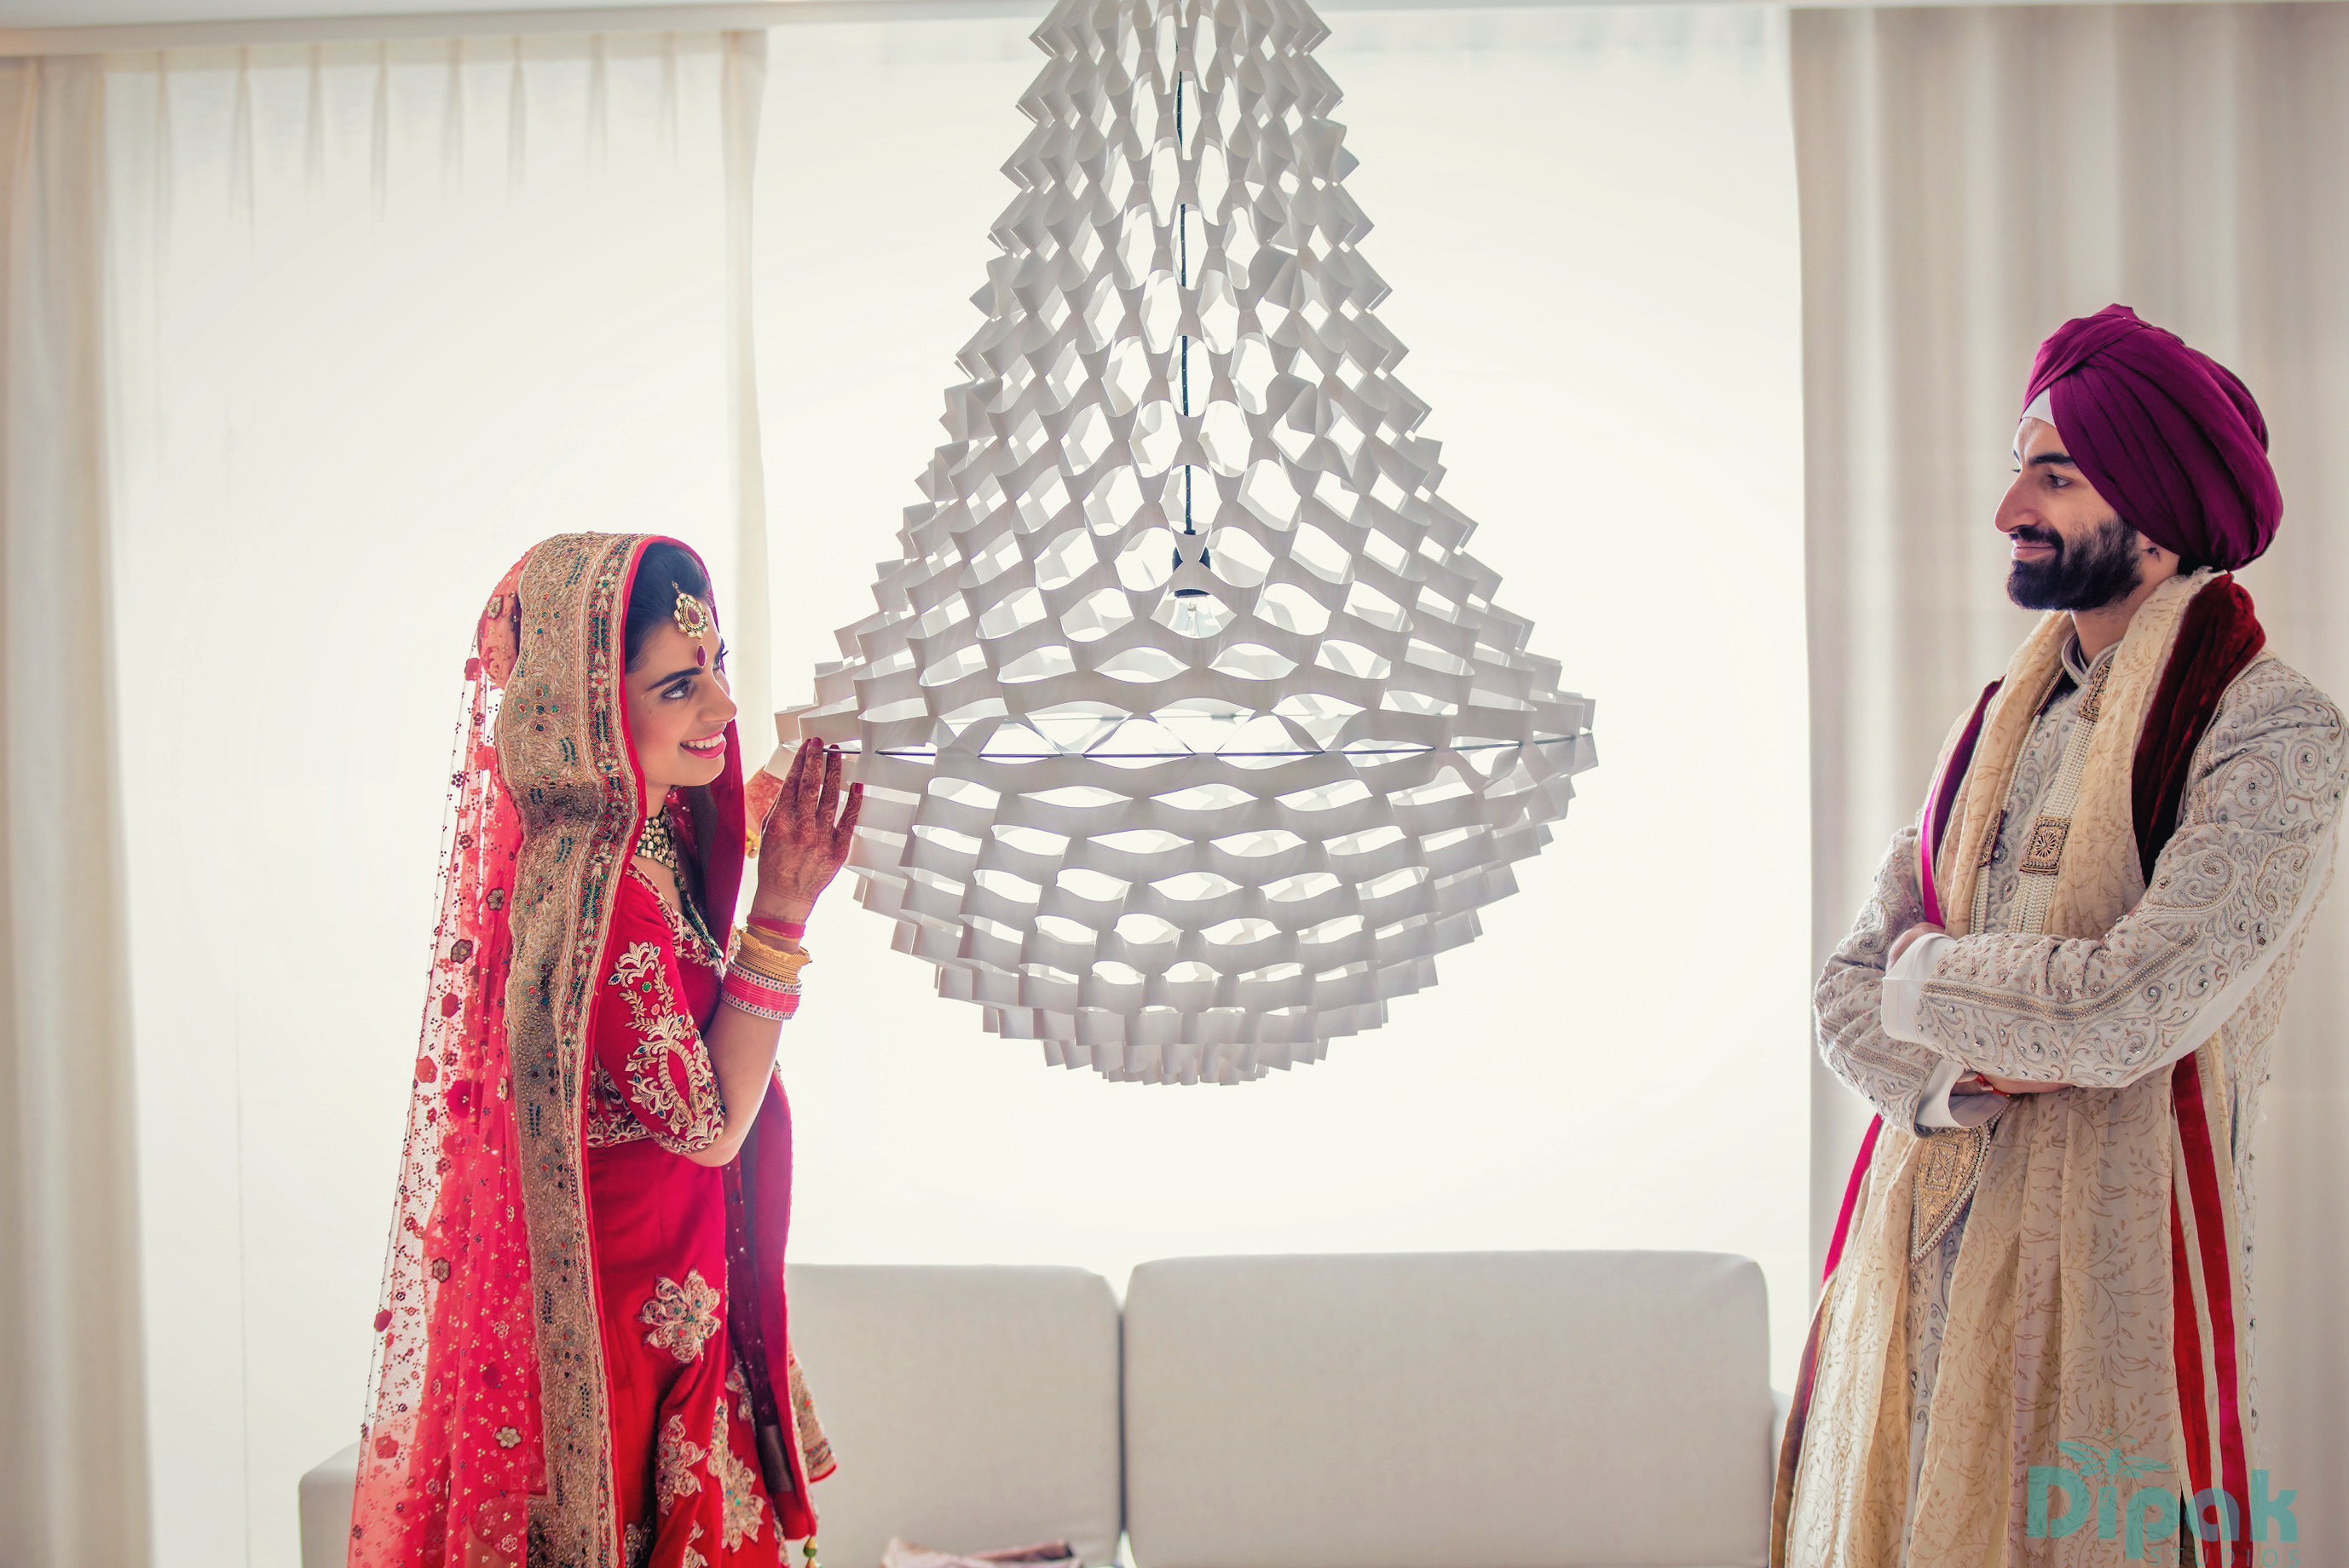 Ankita & Manmeet Fairytale Wedding in Amsterdam - The Maharani Diaries